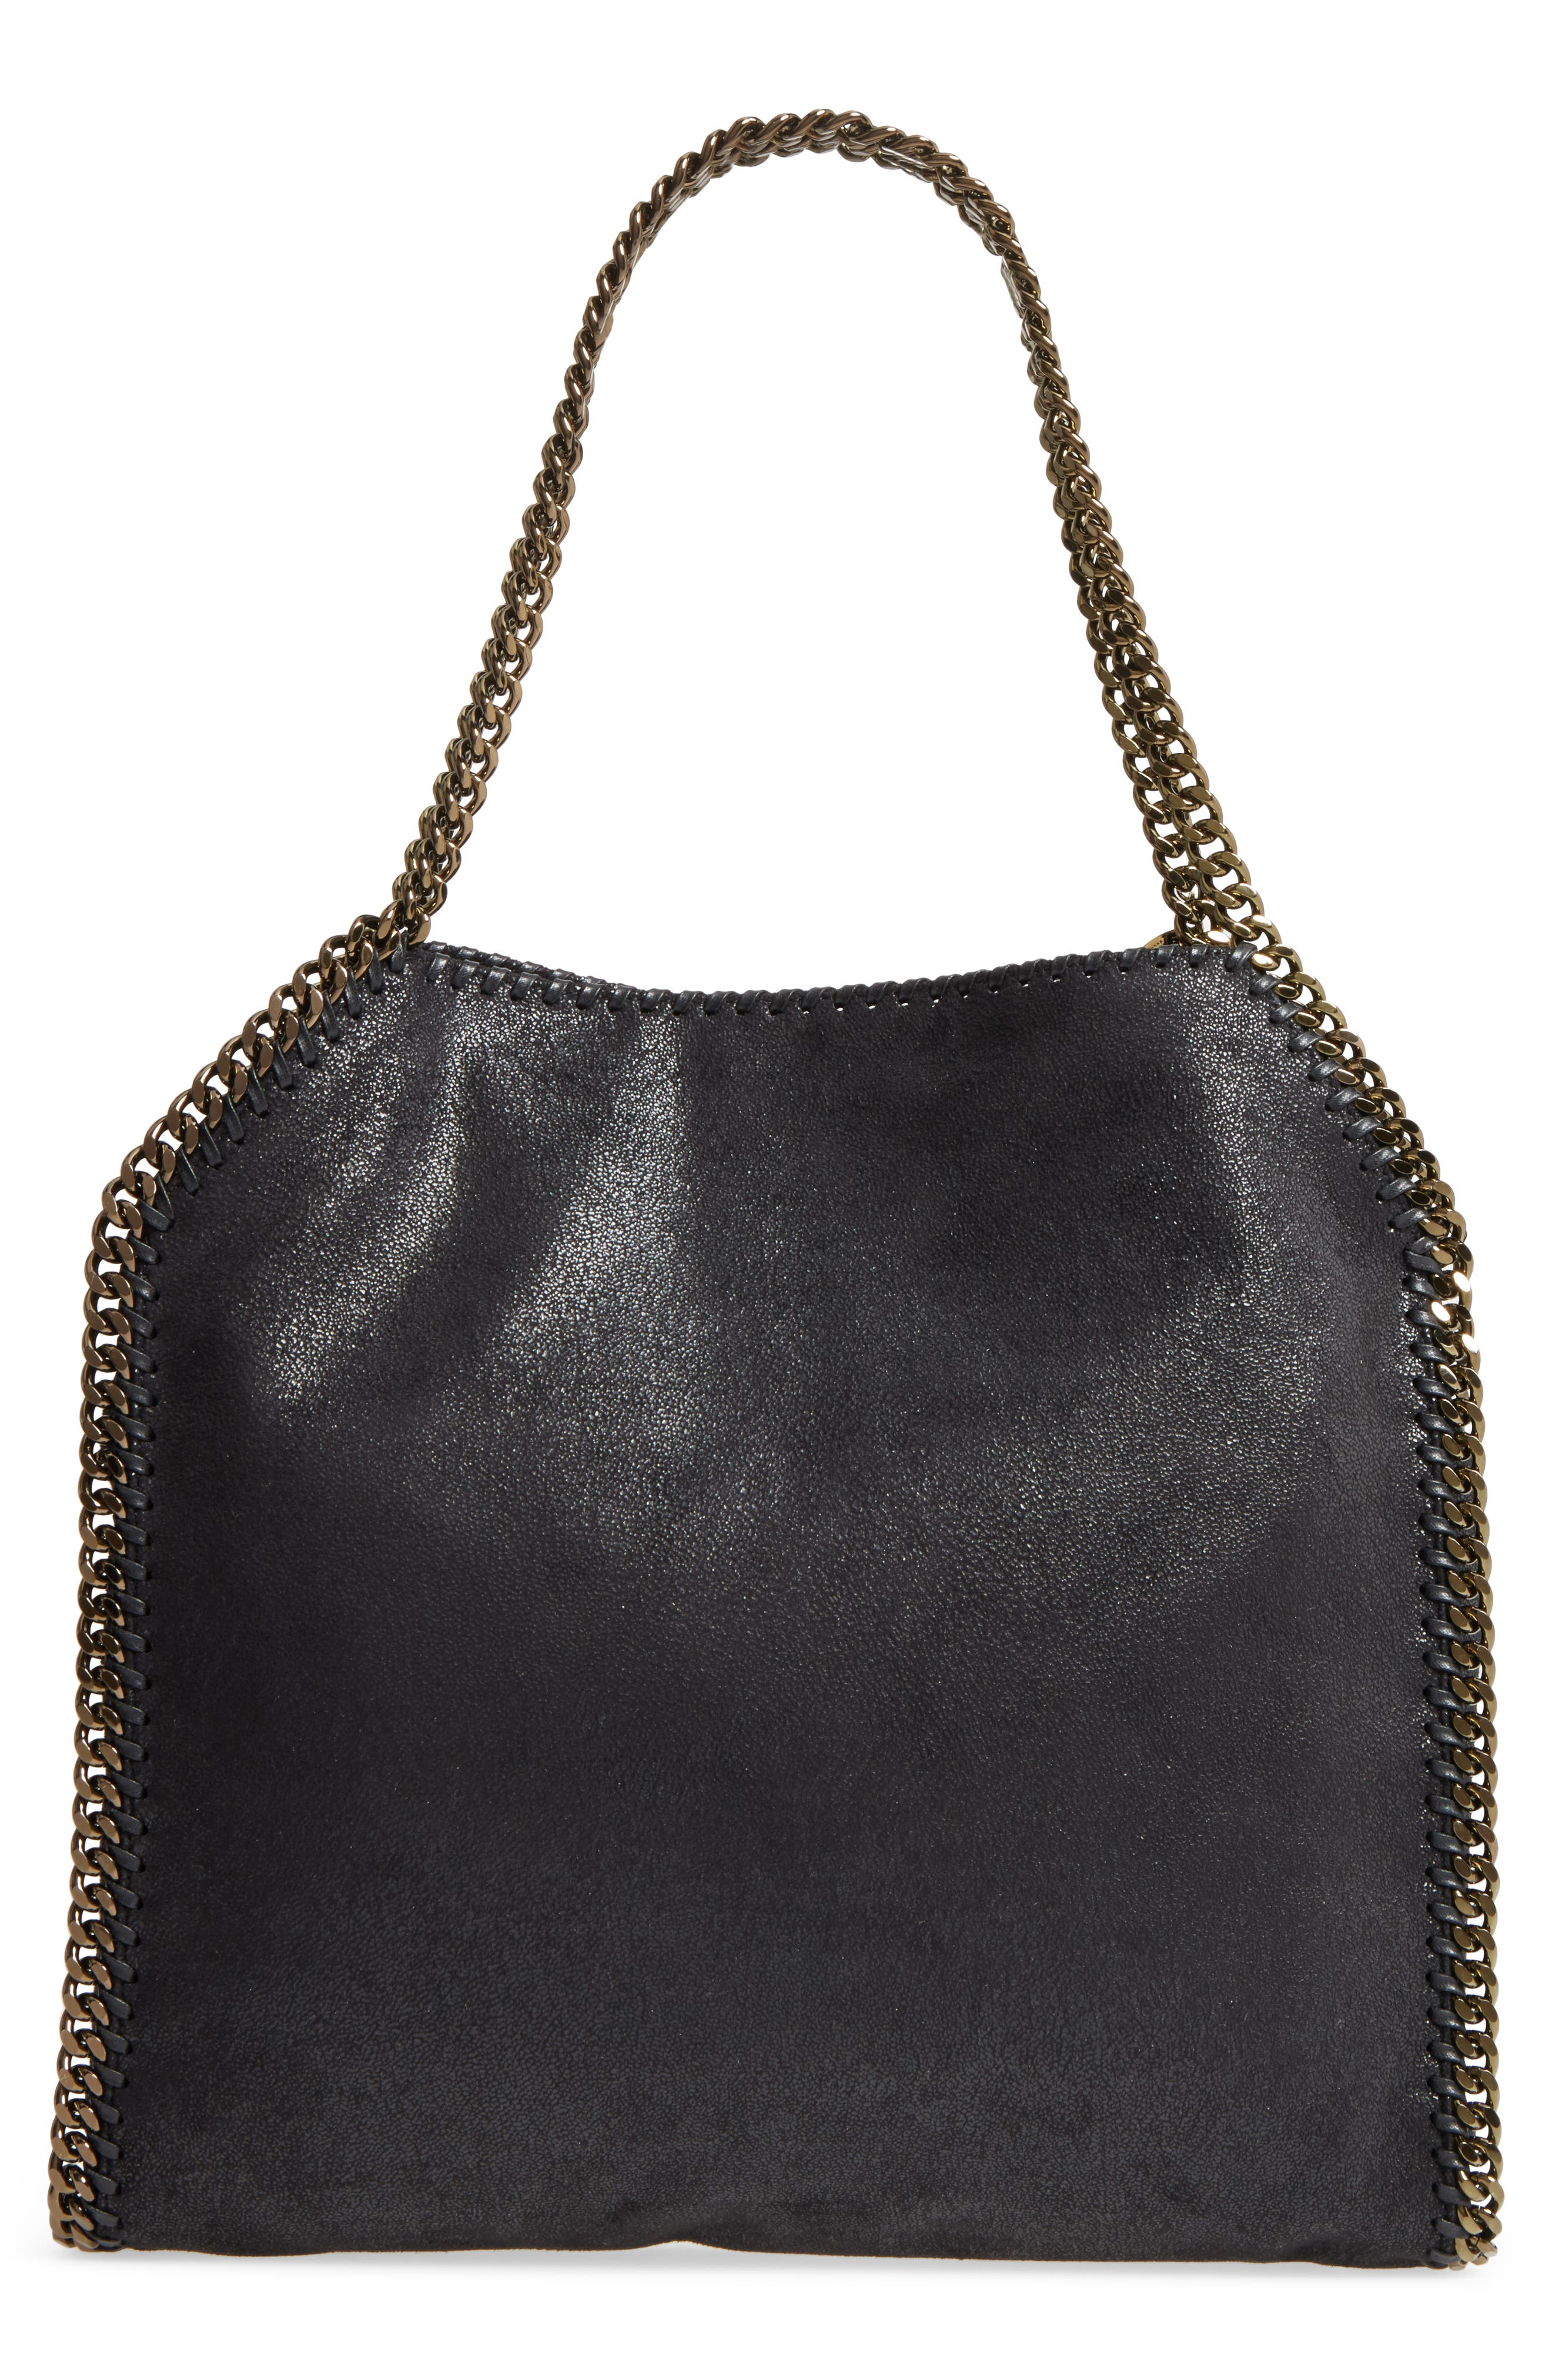 Small Falabella Shaggy Deer Star Faux Leather Tote,                             Alternate thumbnail 3, color,                             Black/ Gold